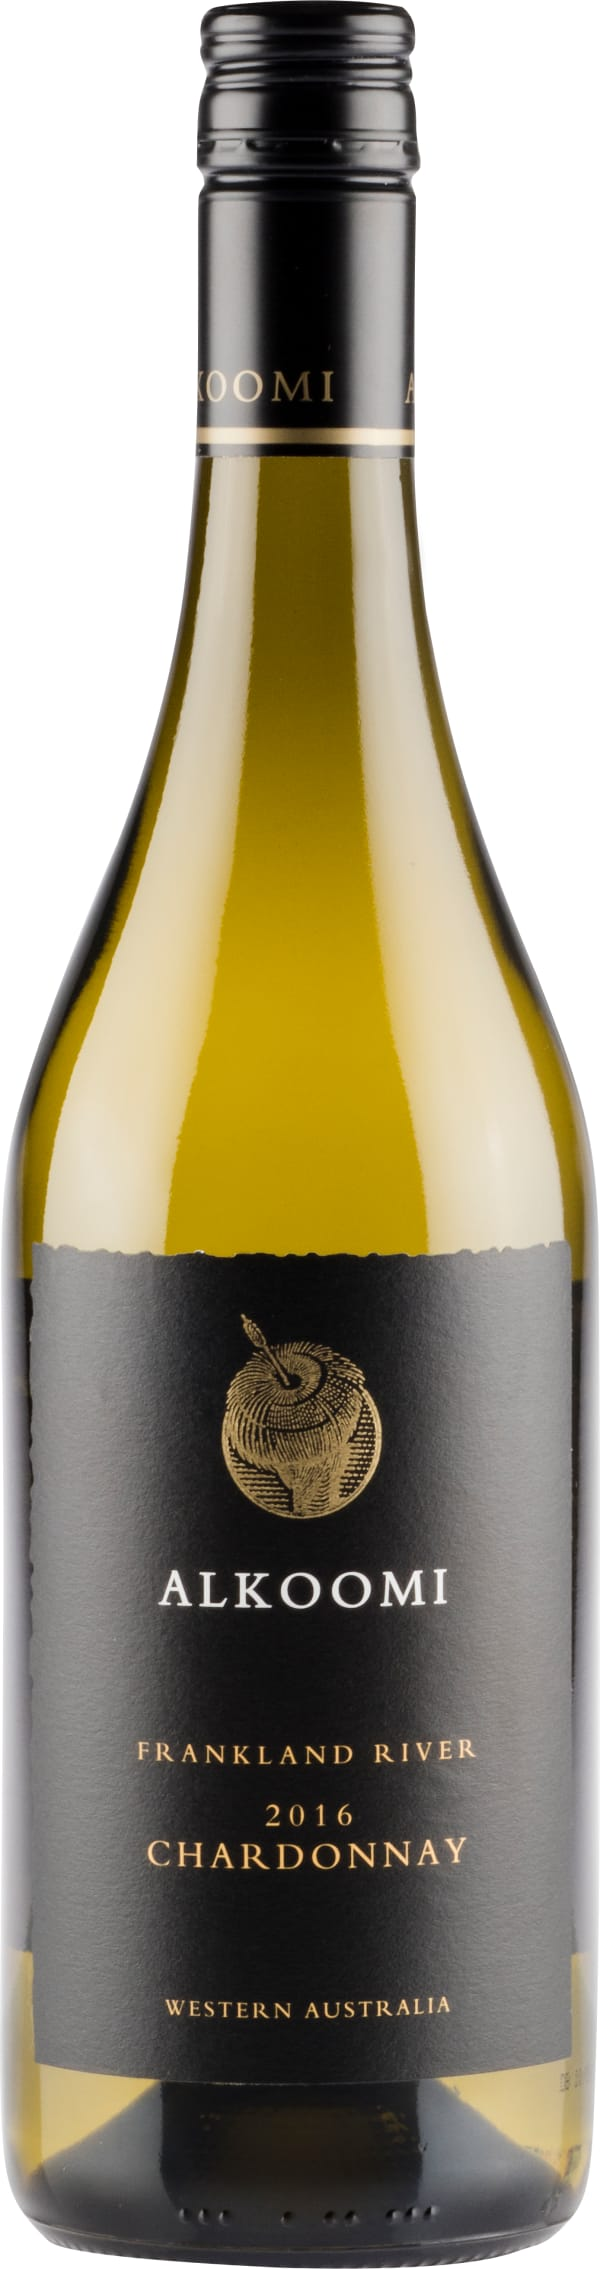 Alkoomi Black Label Chardonnay 2016